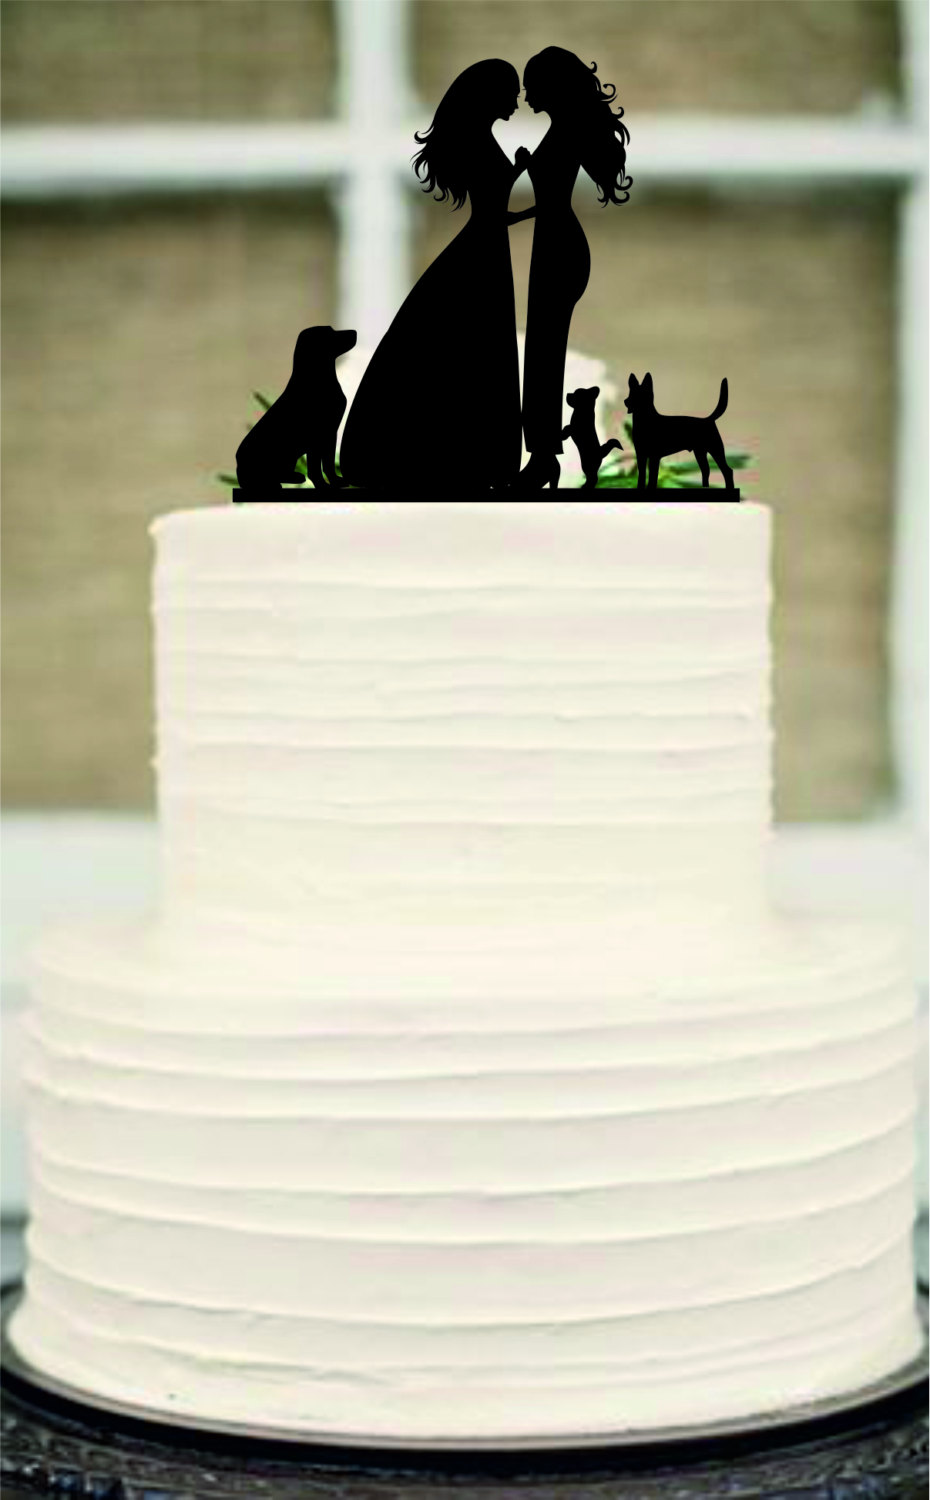 Mrs and Mrs Wedding Cake Toppers